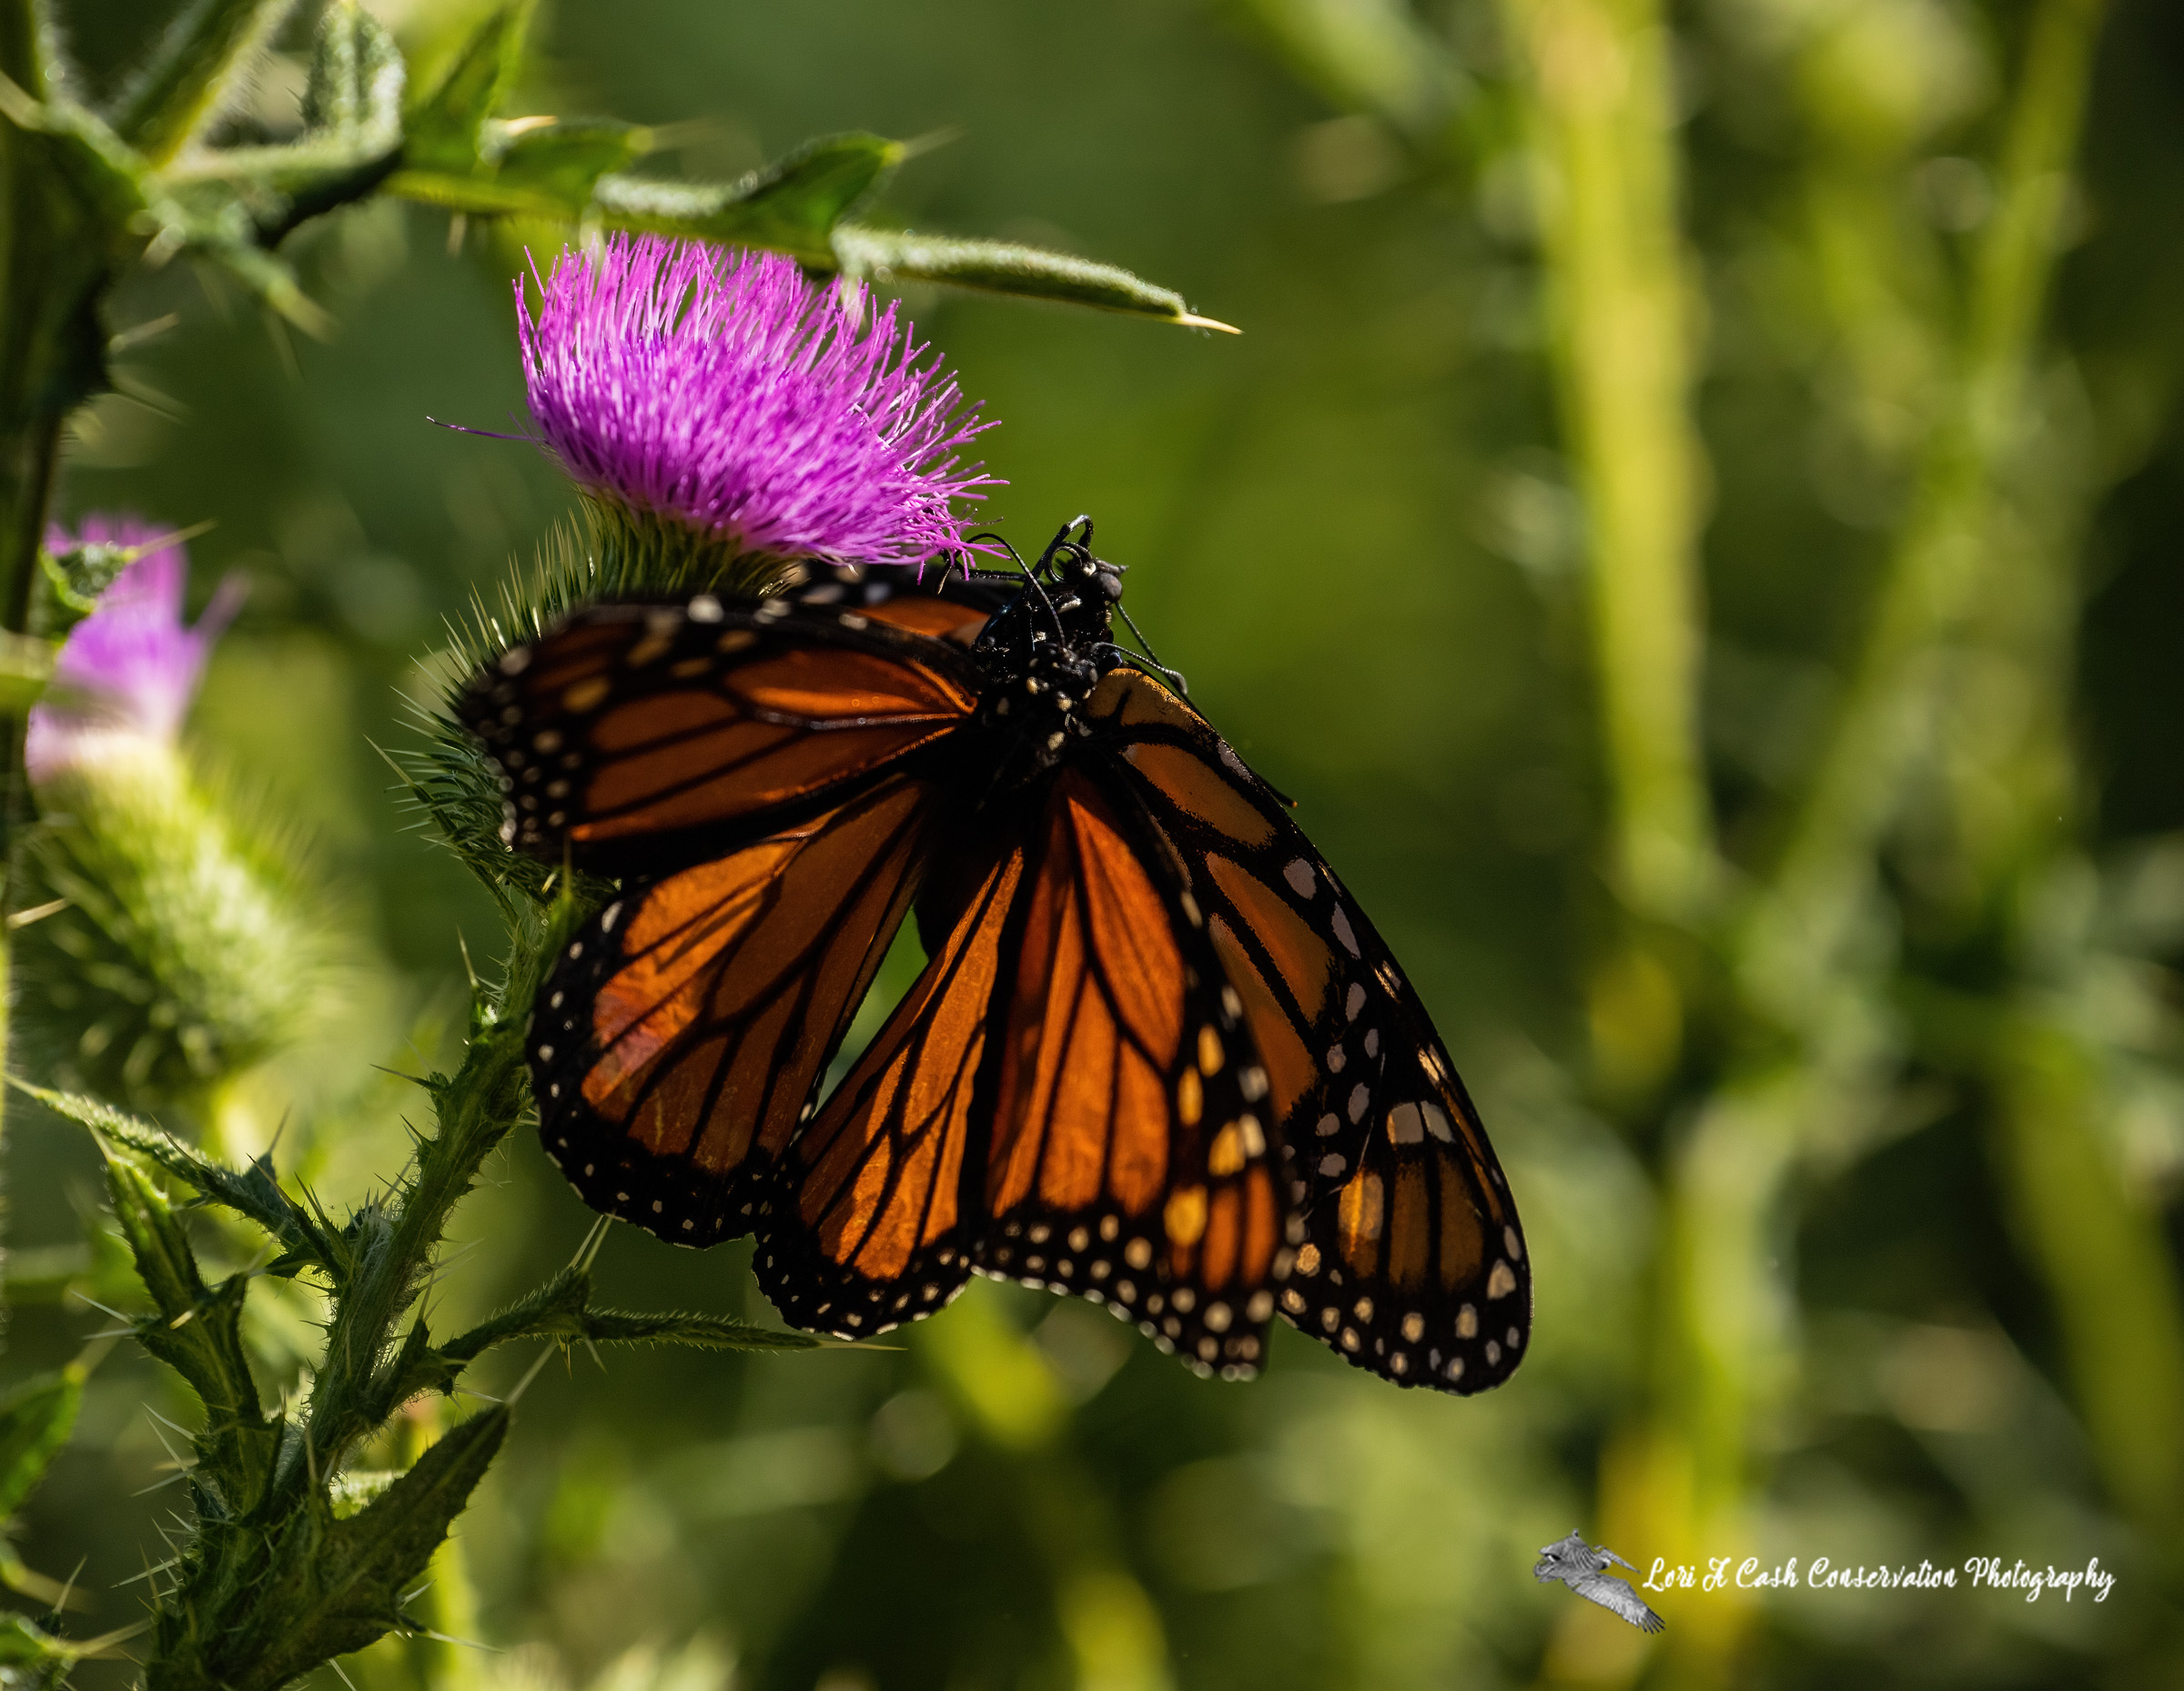 A pair of monarch butterflies (Danaus plexippus) mating on thistle bloom needs protecting from loss of habitat.